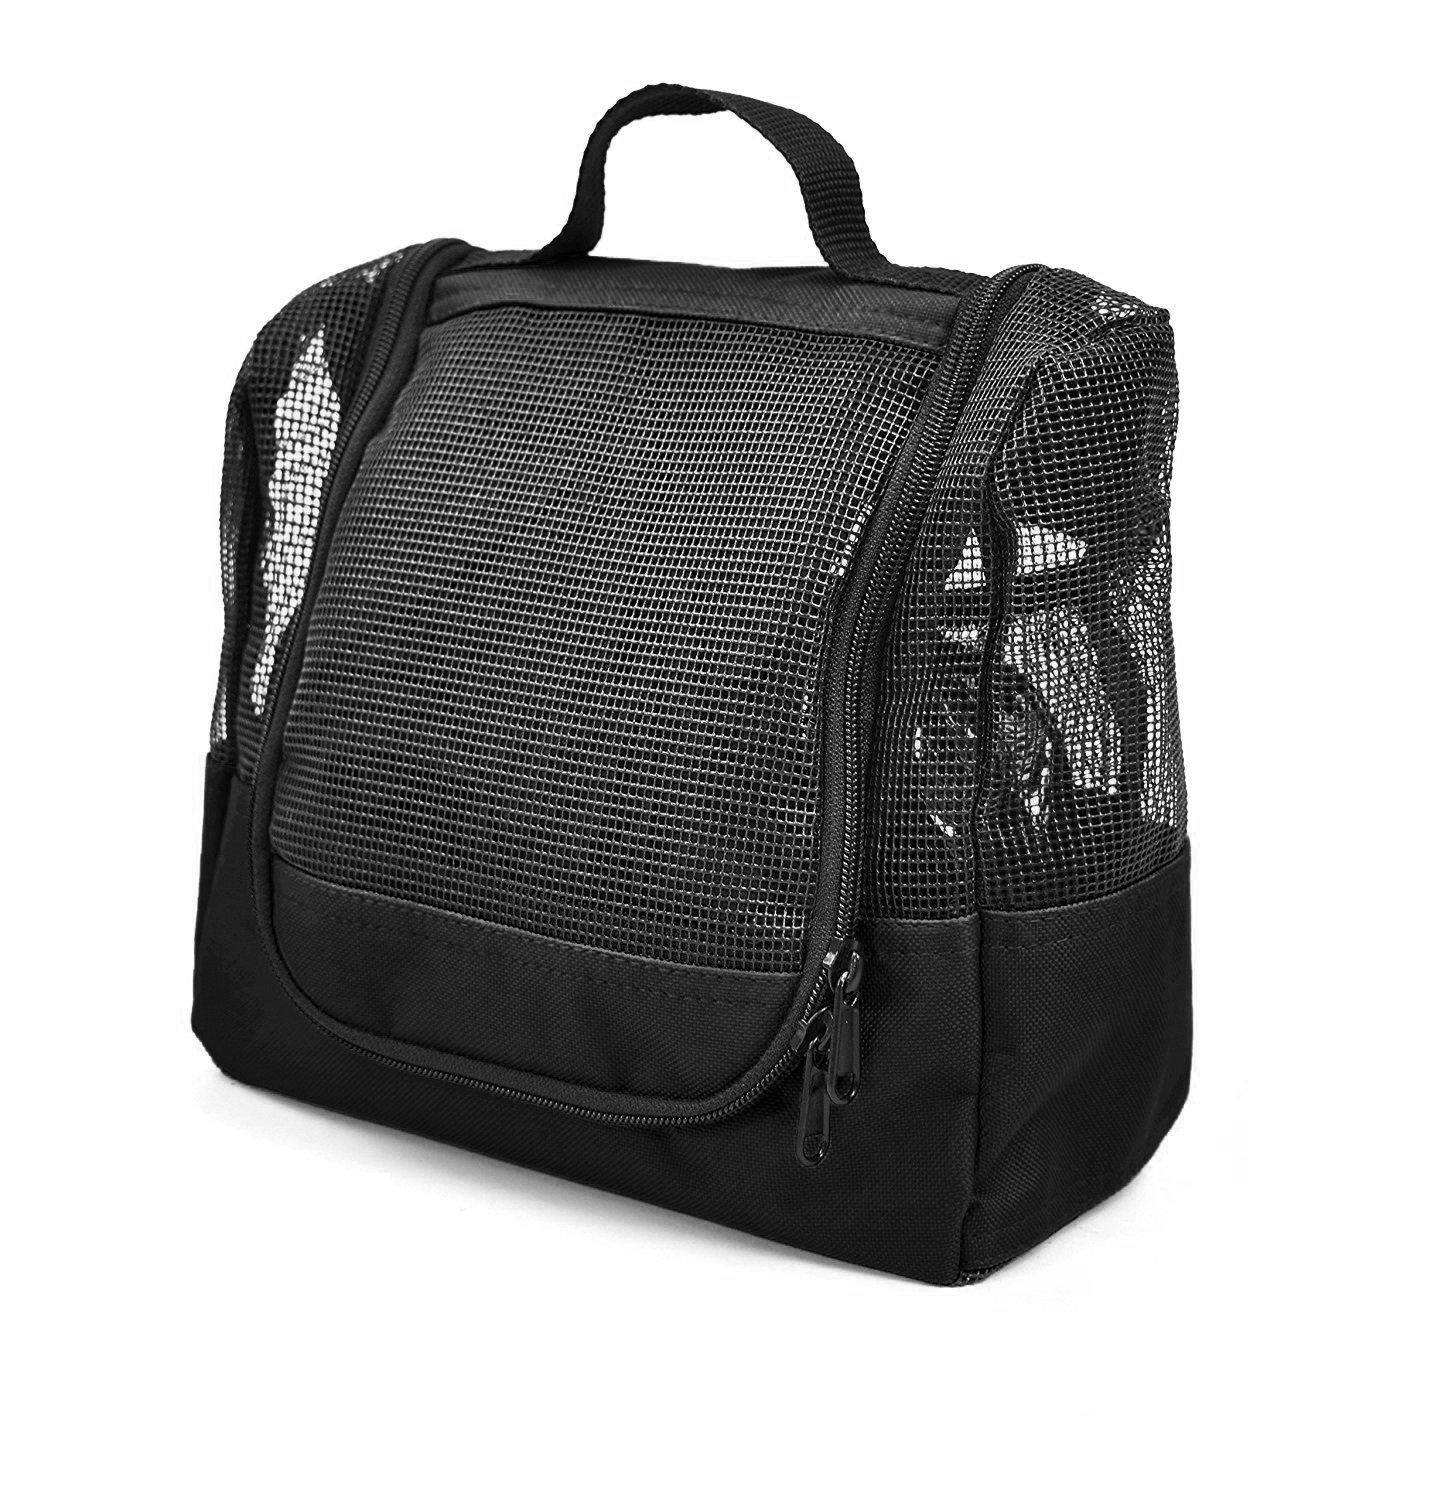 Shower Caddy Case Organizer Tote Nero Black to Hang in The Shower Plus Free Toiletries Bag - by The Fine Living Co USA